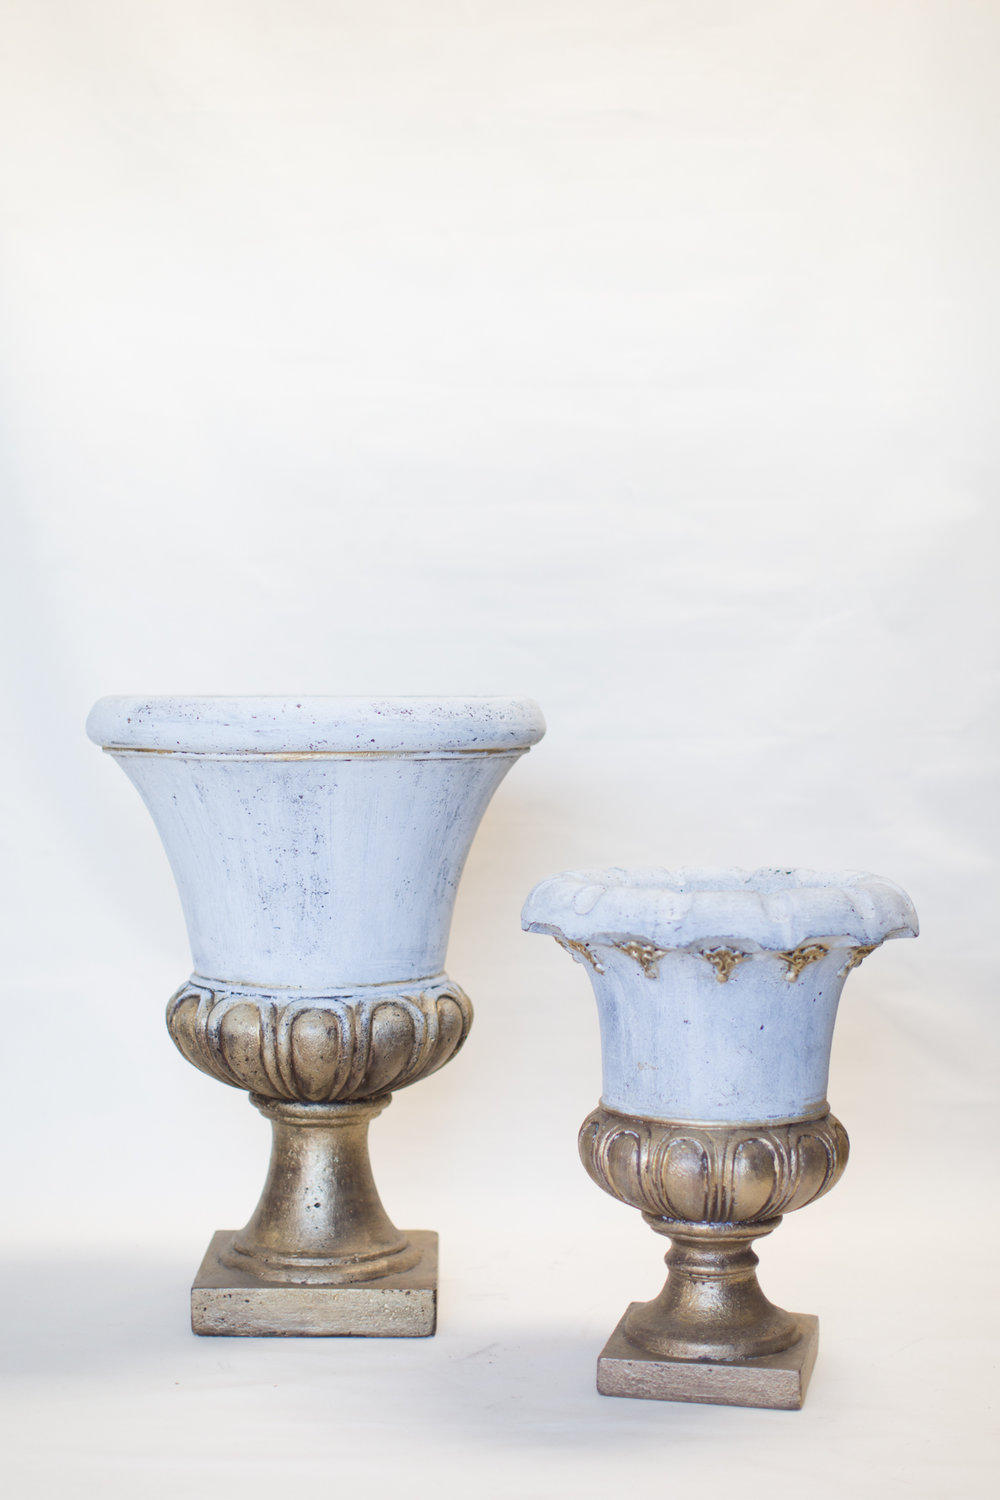 Gold, White-Washed Urns